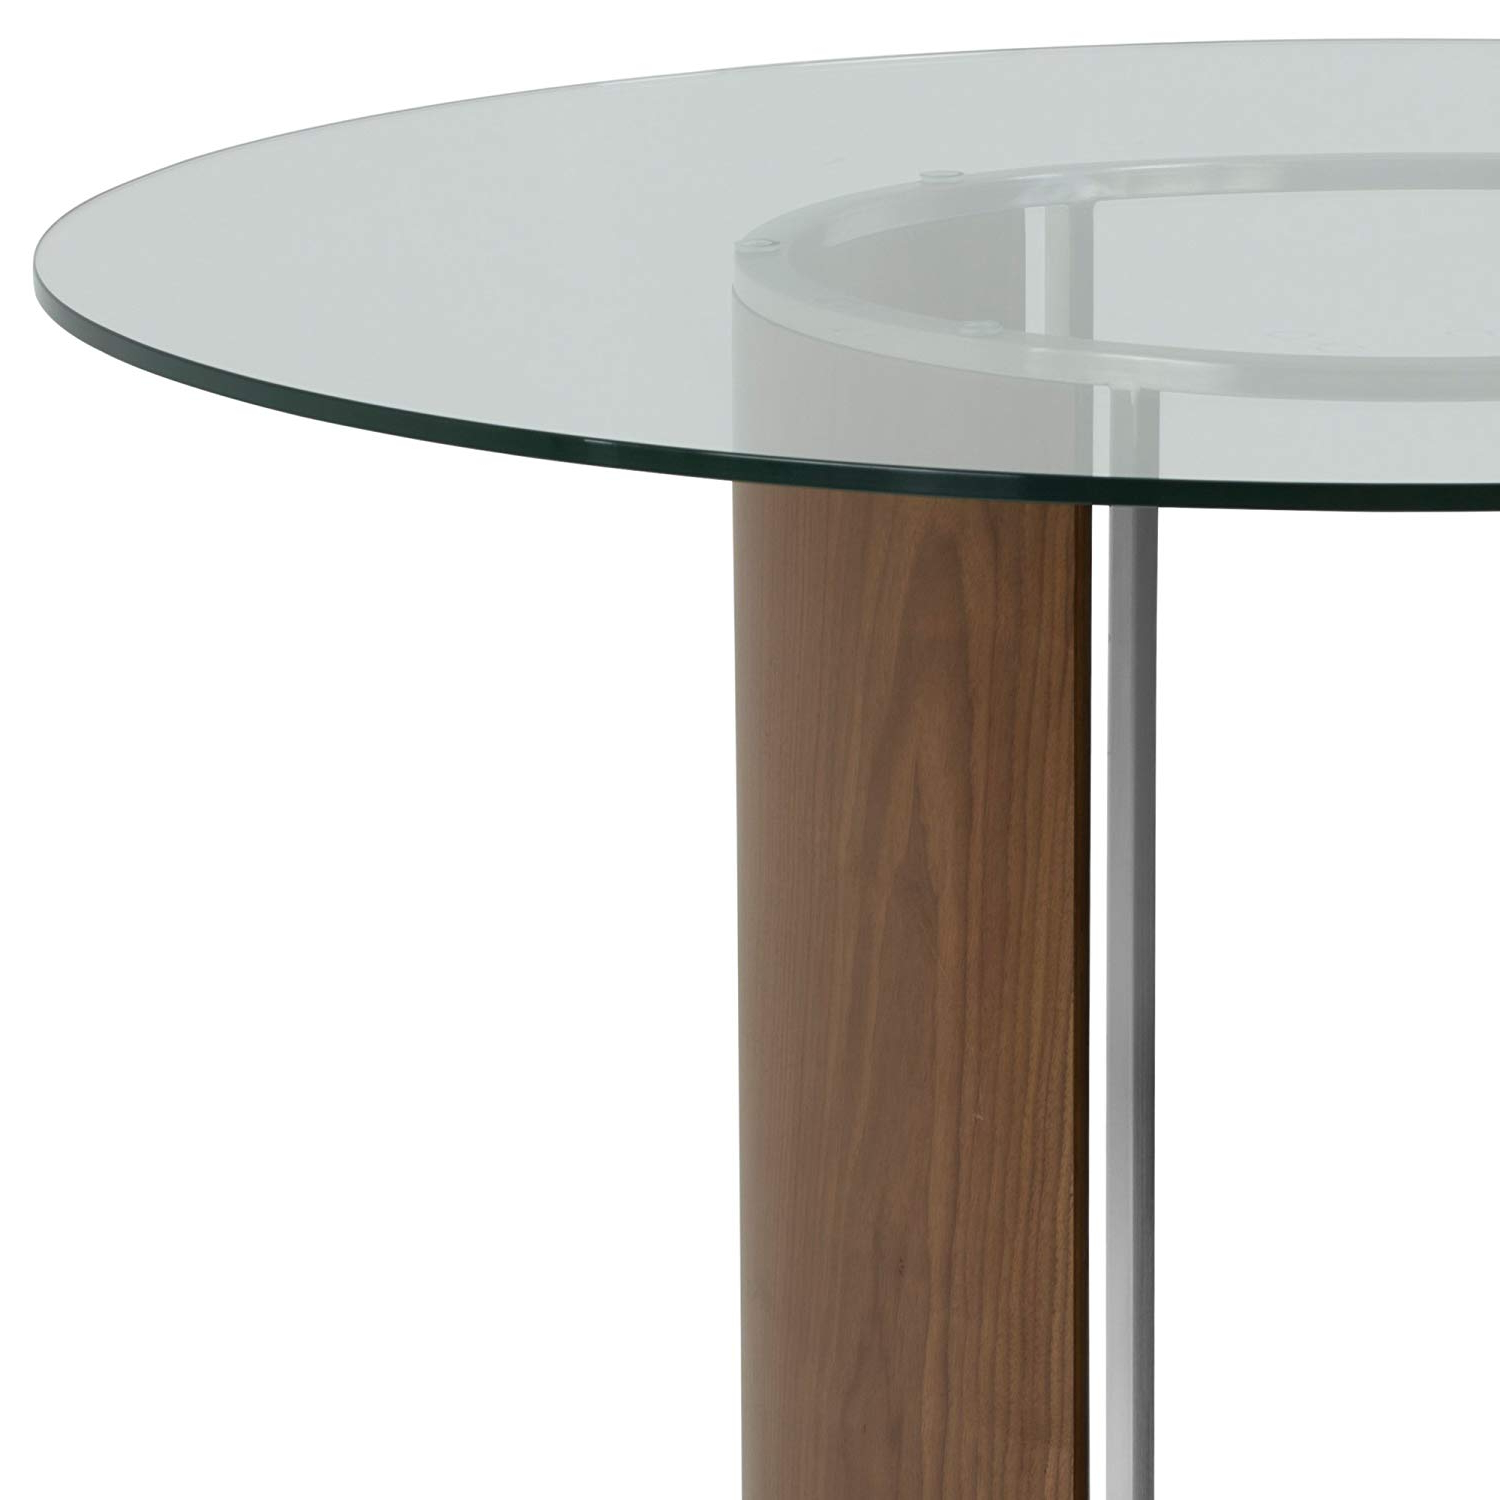 Round Dining Tables With Glass Top Intended For Newest Armen Living Delano Dining Table With Clear Glass Top, Walnut Wood And Brushed Stainless Steel Finish (View 24 of 25)